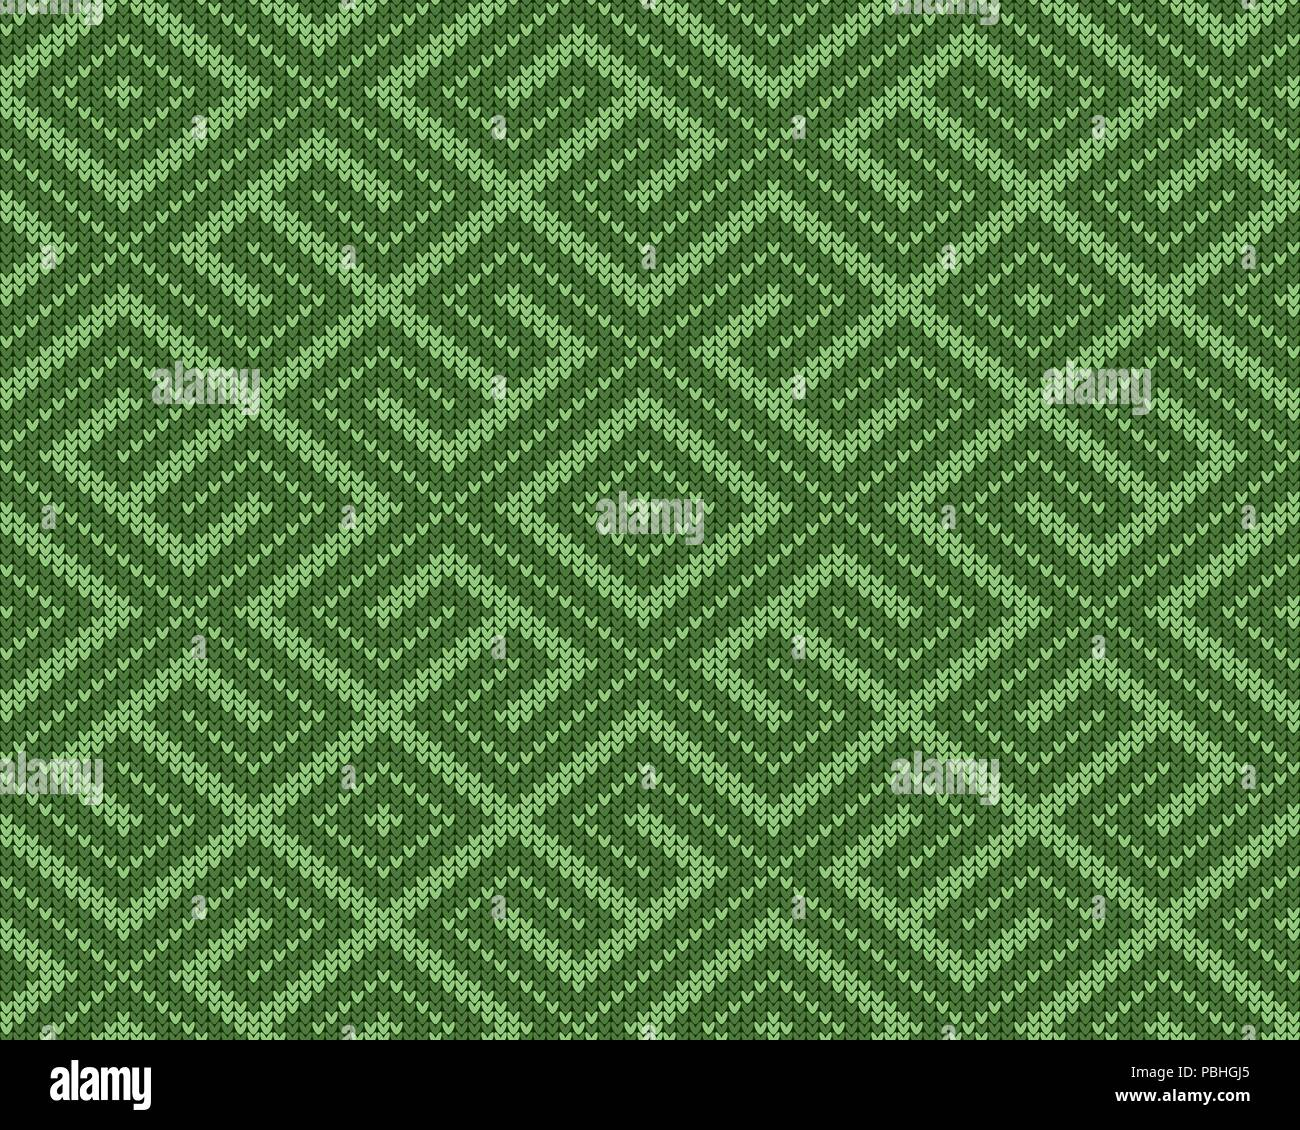 Seamless knitted Old Russian national woolen pattern. Design Green Labyrinth - Stock Image